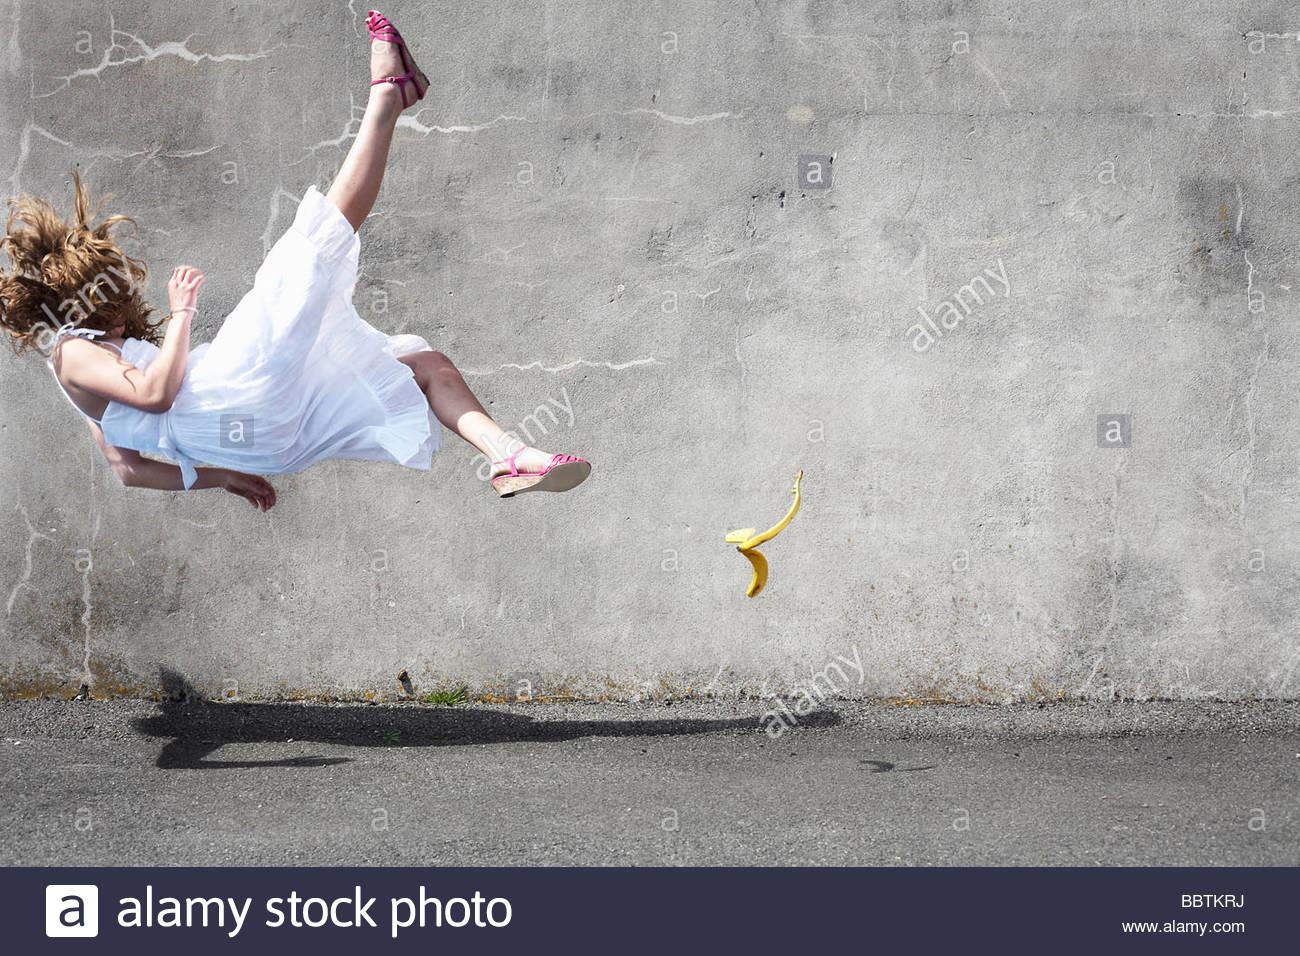 Girl slipping on a banana - Stock Image